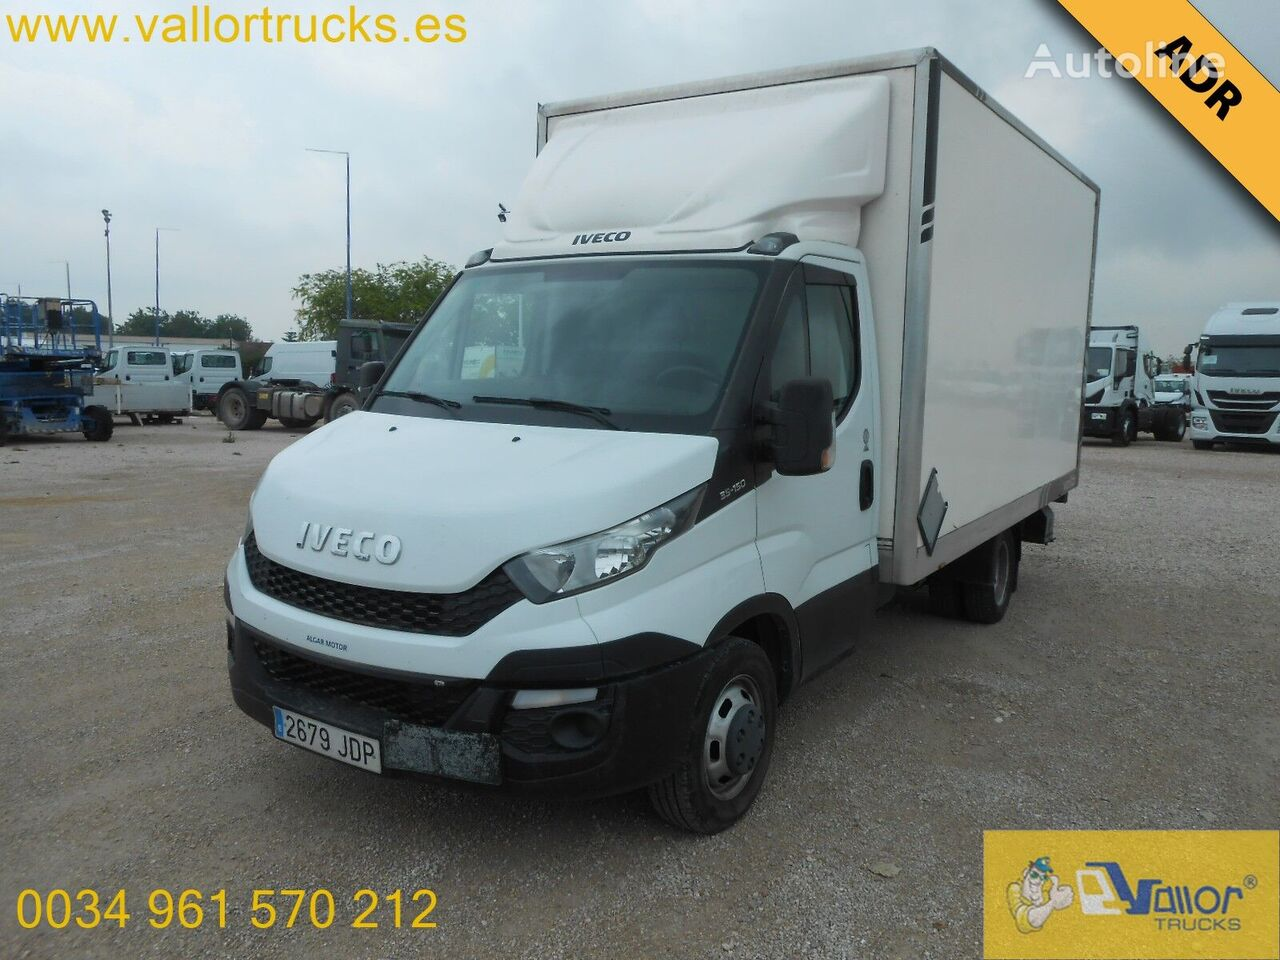 IVECO Daily 35C15 box truck < 3.5t